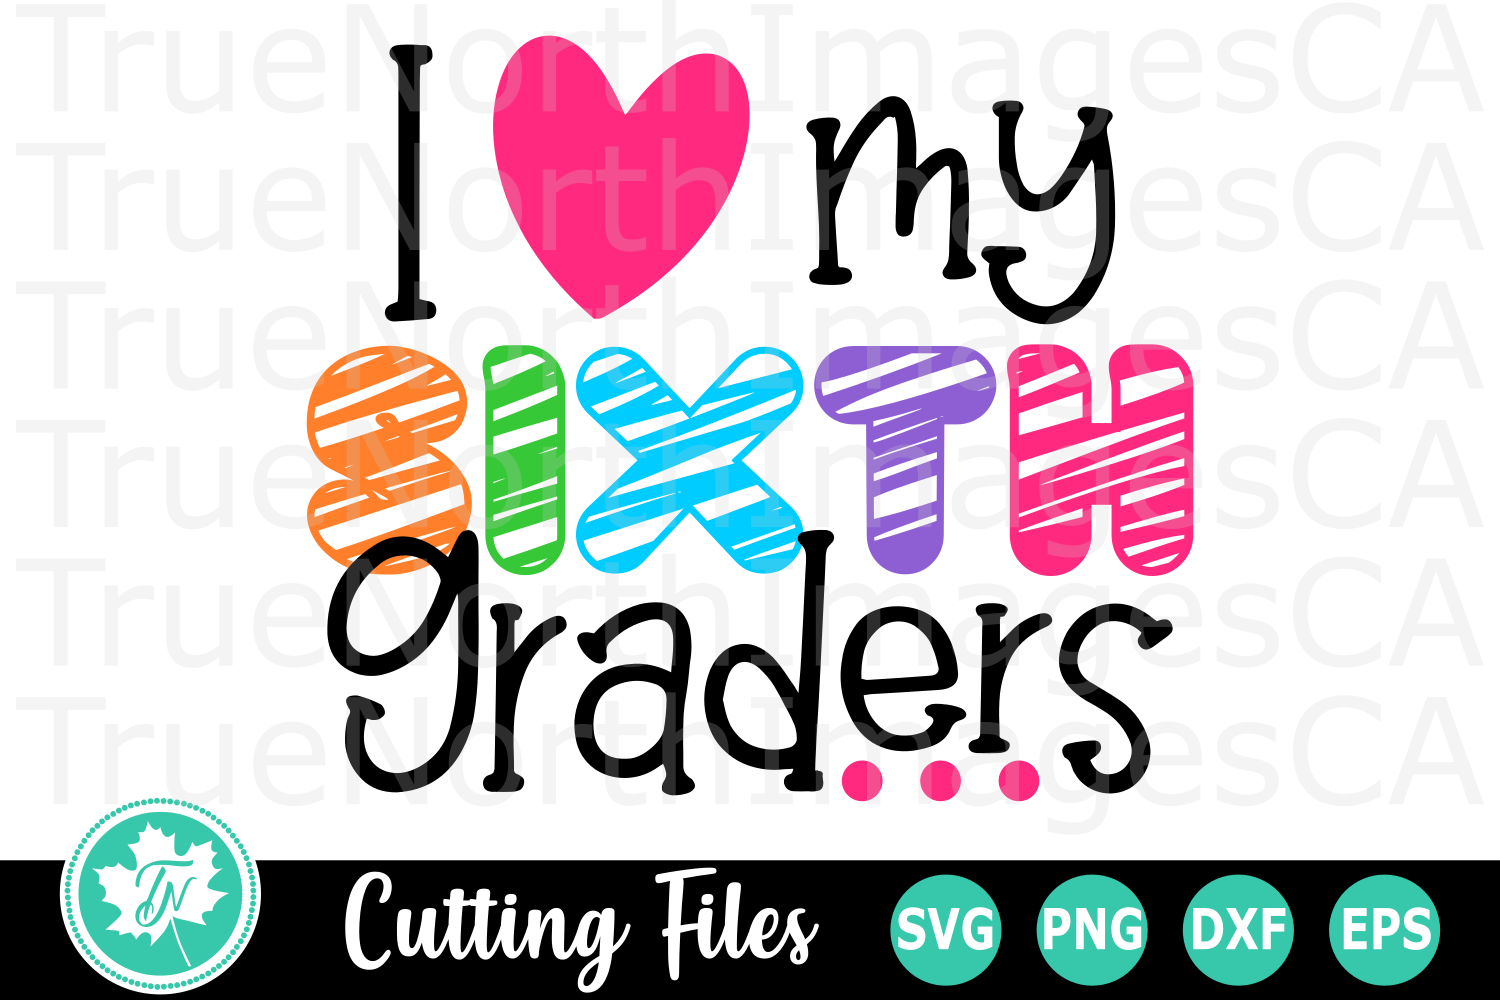 I Love My Sixth Graders - A School SVG Cut File example image 3